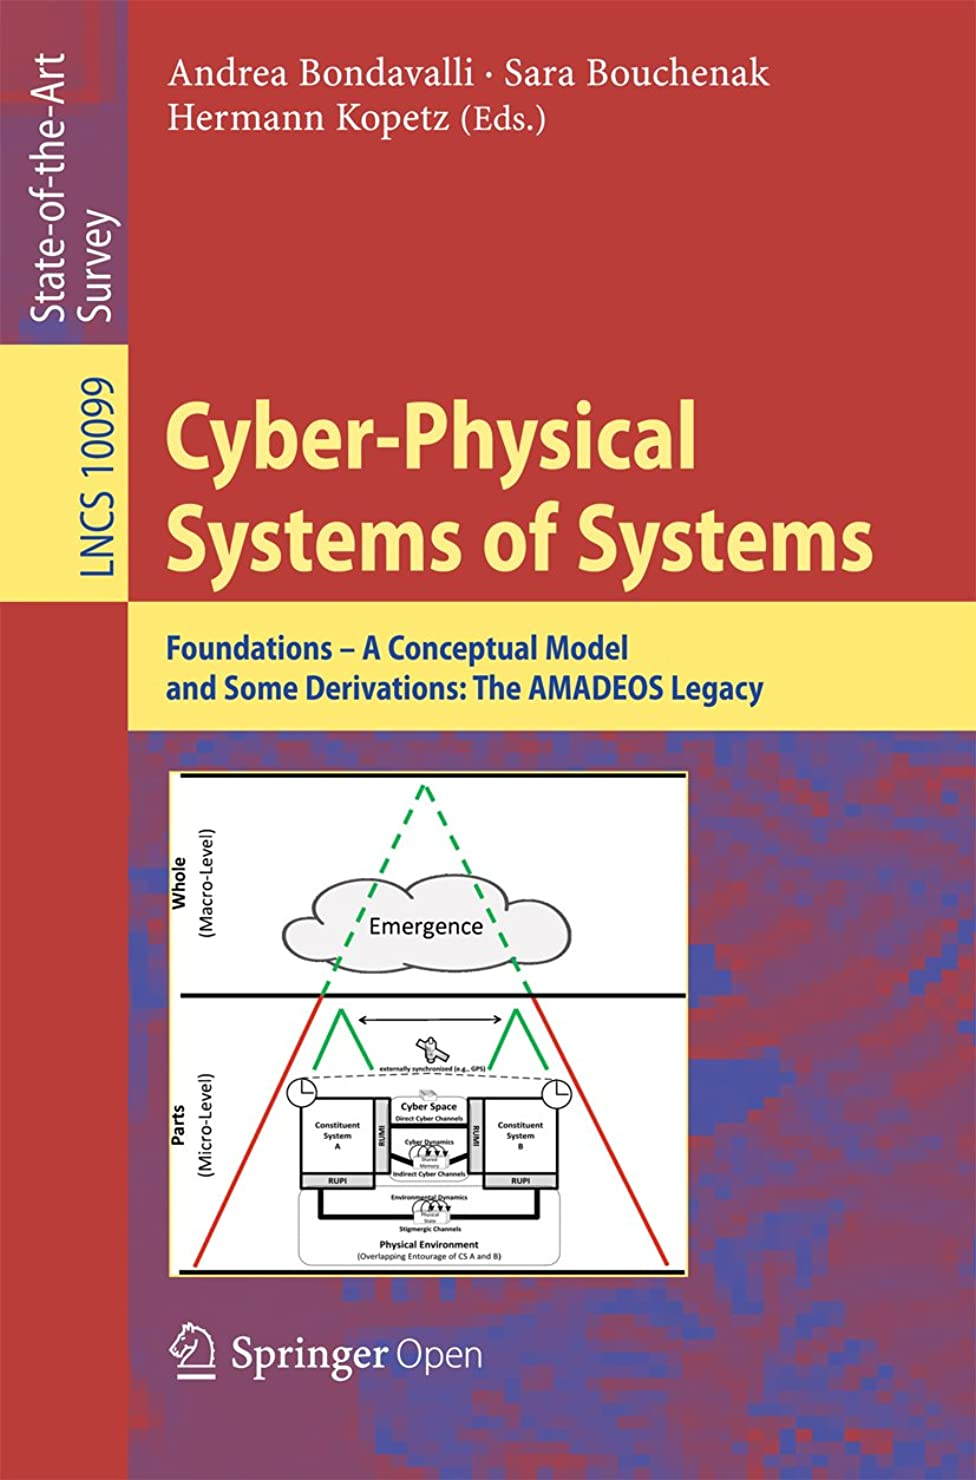 権威防腐剤服を洗うCyber-Physical Systems of Systems: Foundations – A Conceptual Model and Some Derivations: The AMADEOS Legacy (Lecture Notes in Computer Science Book 10099) (English Edition)